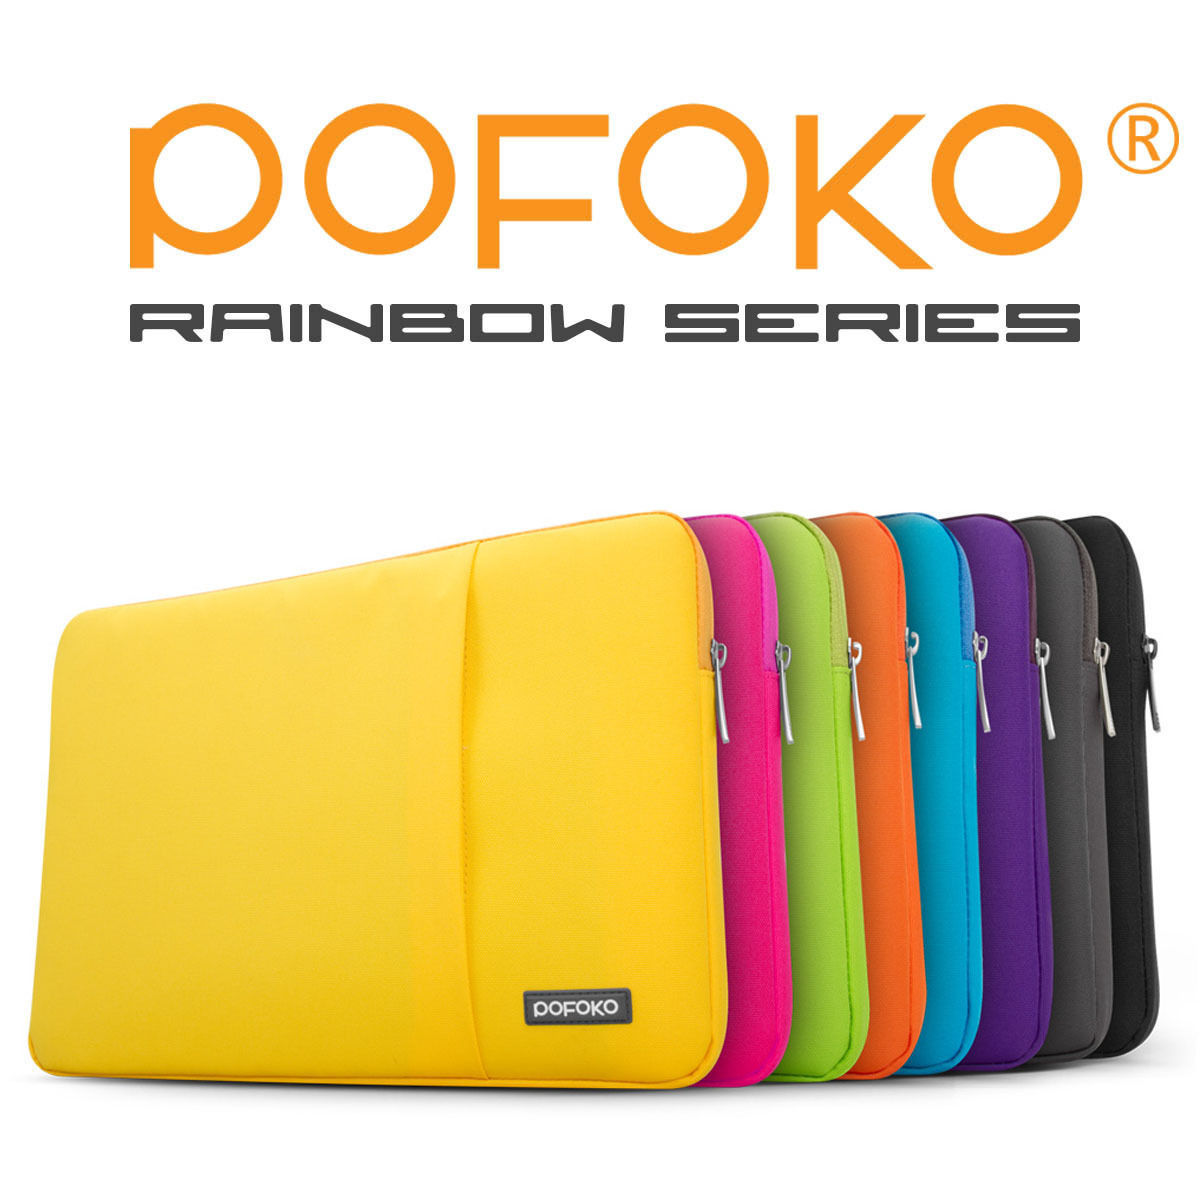 POFOKO Waterproof and anti fall <font><b>laptop</b></font> <font><b>sleeve</b></font> bag case cover pouch skins For Apple Macbook Pro Air 13.3 MC white <font><b>11</b></font> 12 13 15 17